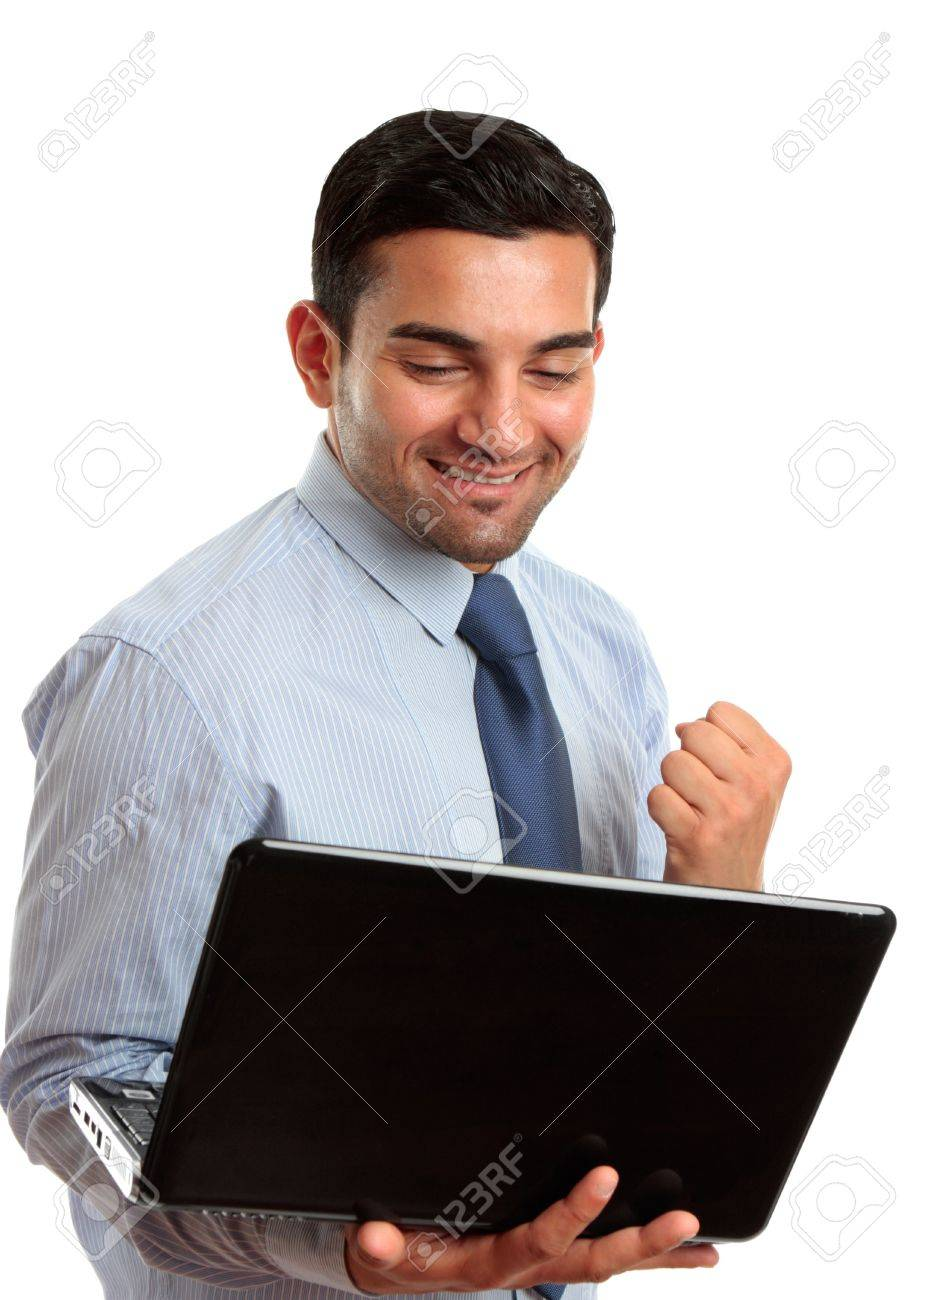 A happy excited business man with holding a laptop and showing a fist of success, or victory.  White background. Stock Photo - 7362148